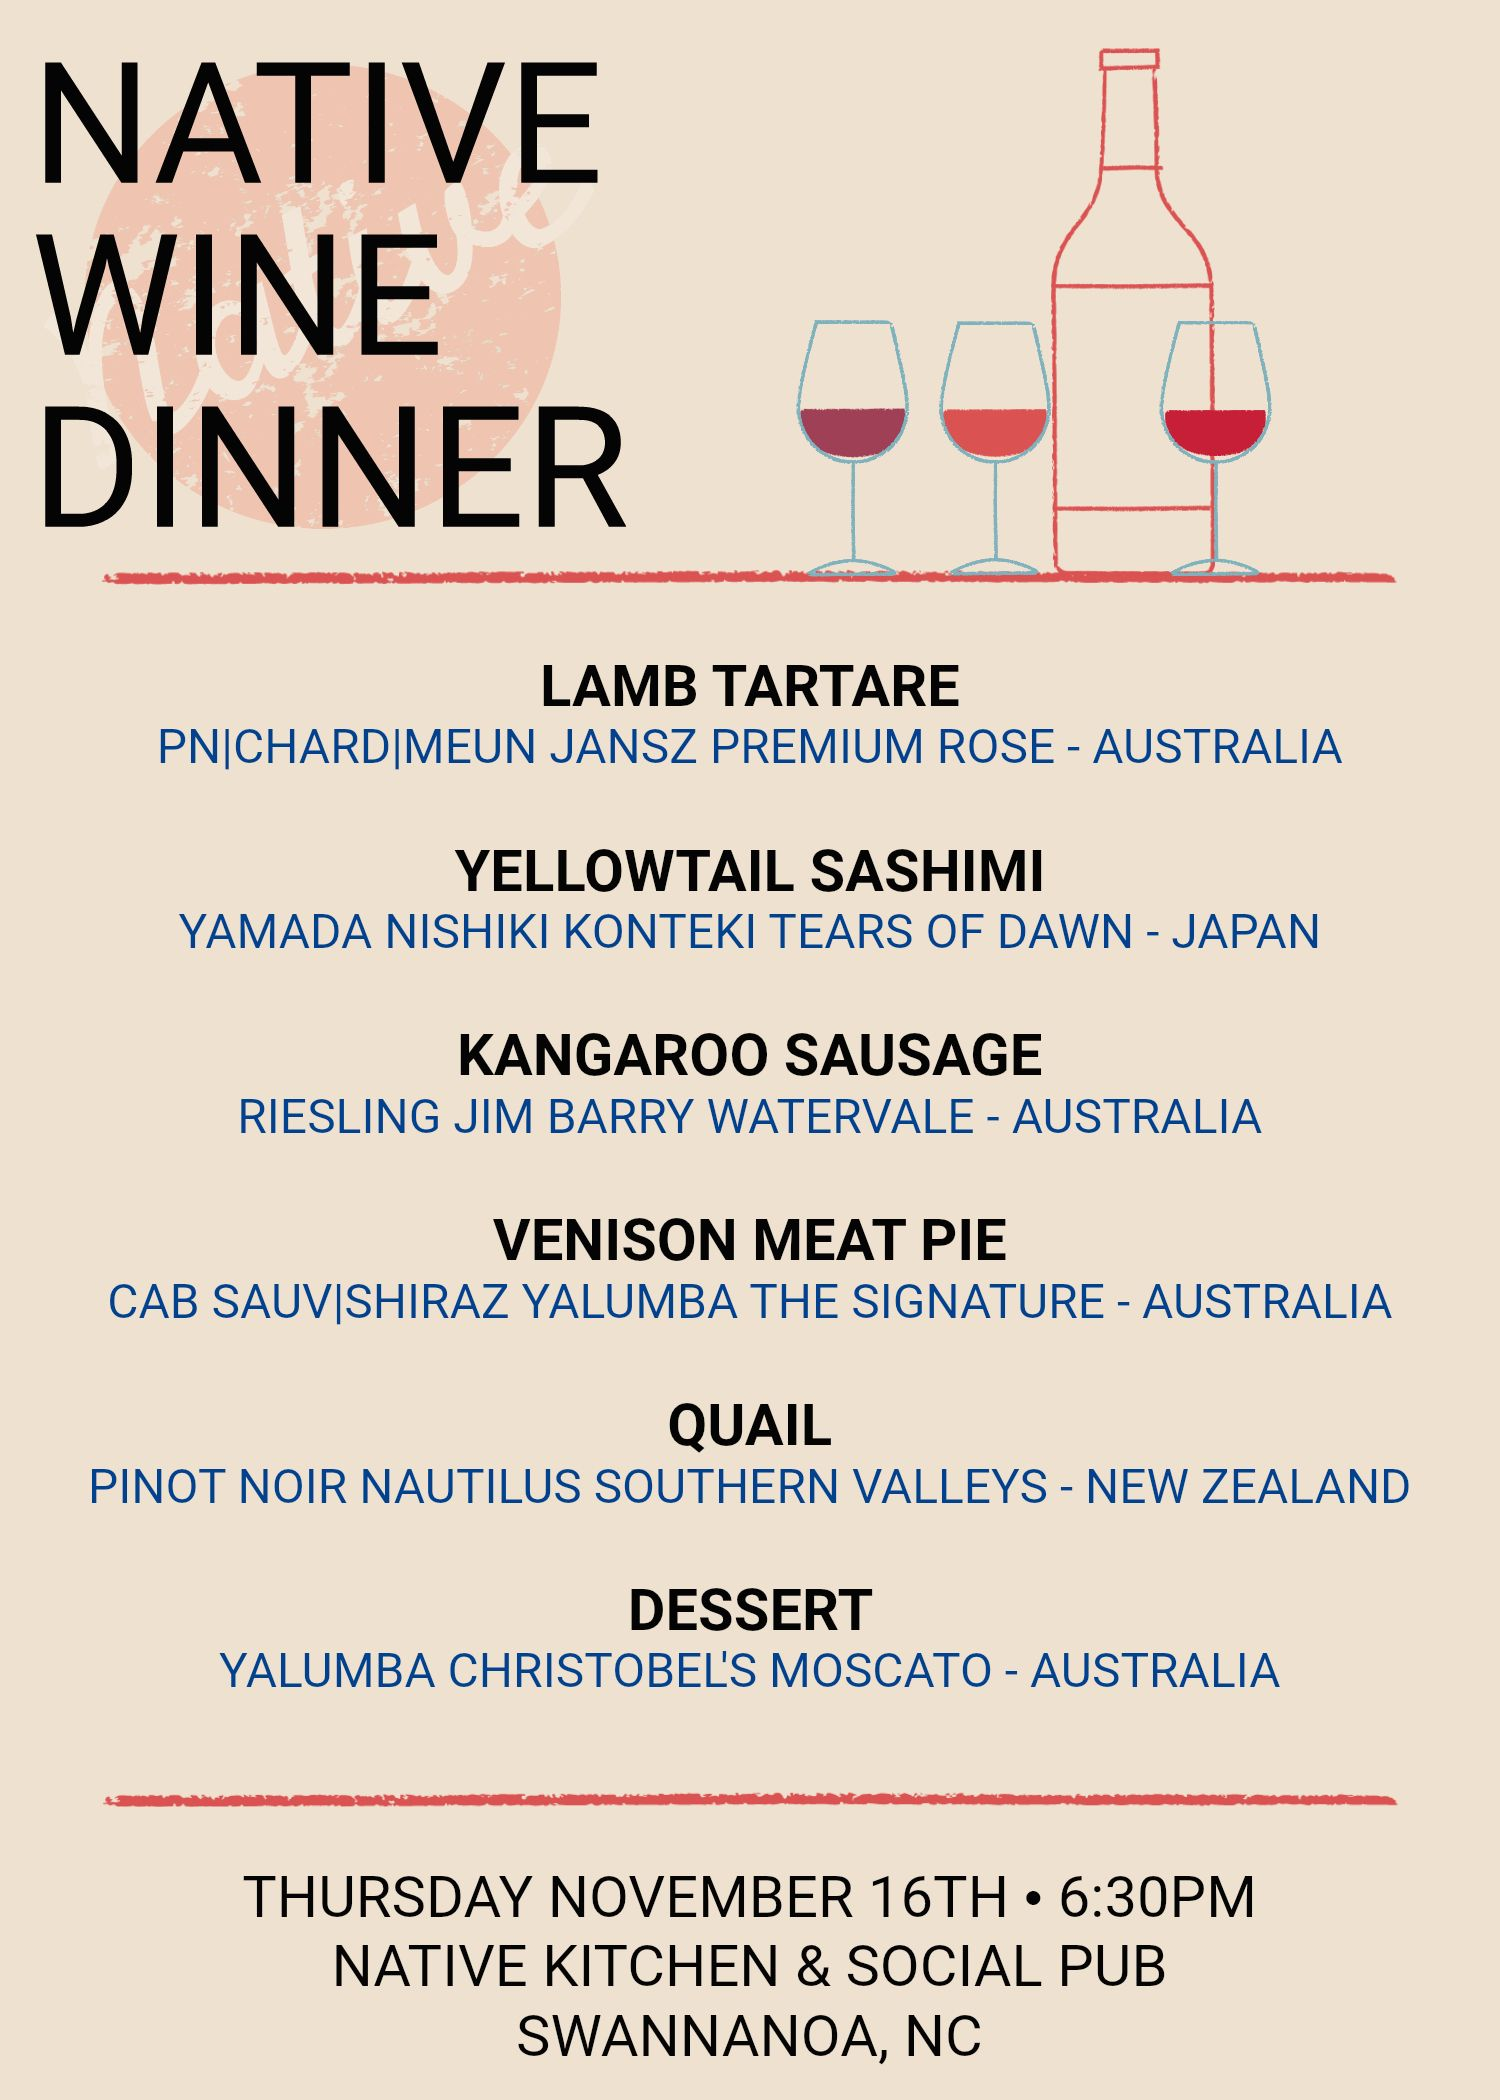 Native Kitchen & Social Pub\'s first ever wine dinner is coming 11/16 ...